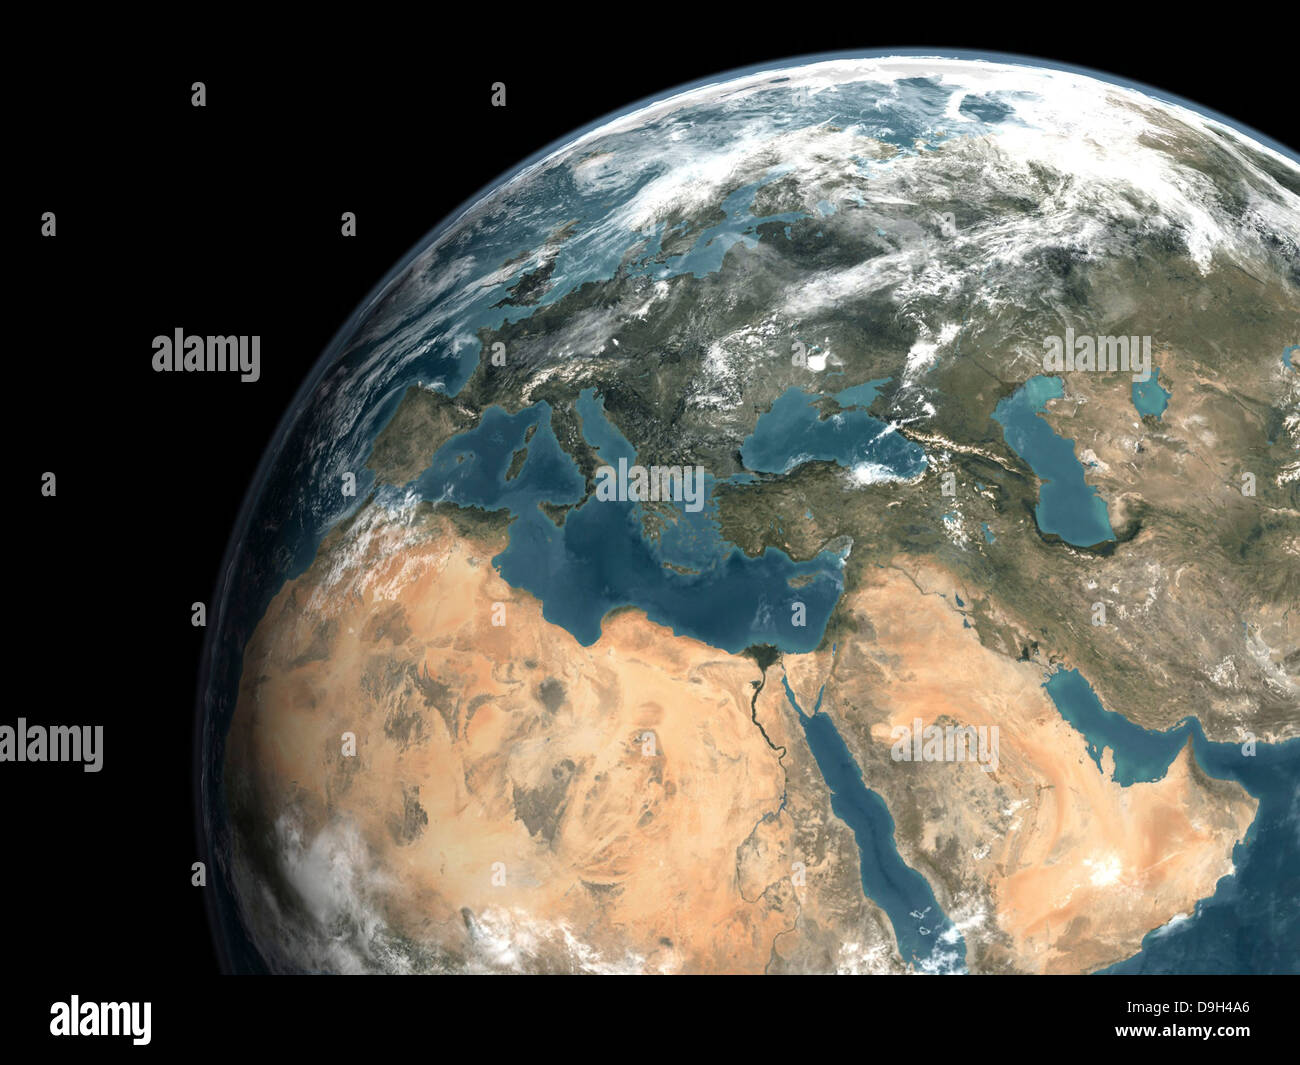 Global view of earth over Europe, Middle East, and northern Africa. - Stock Image